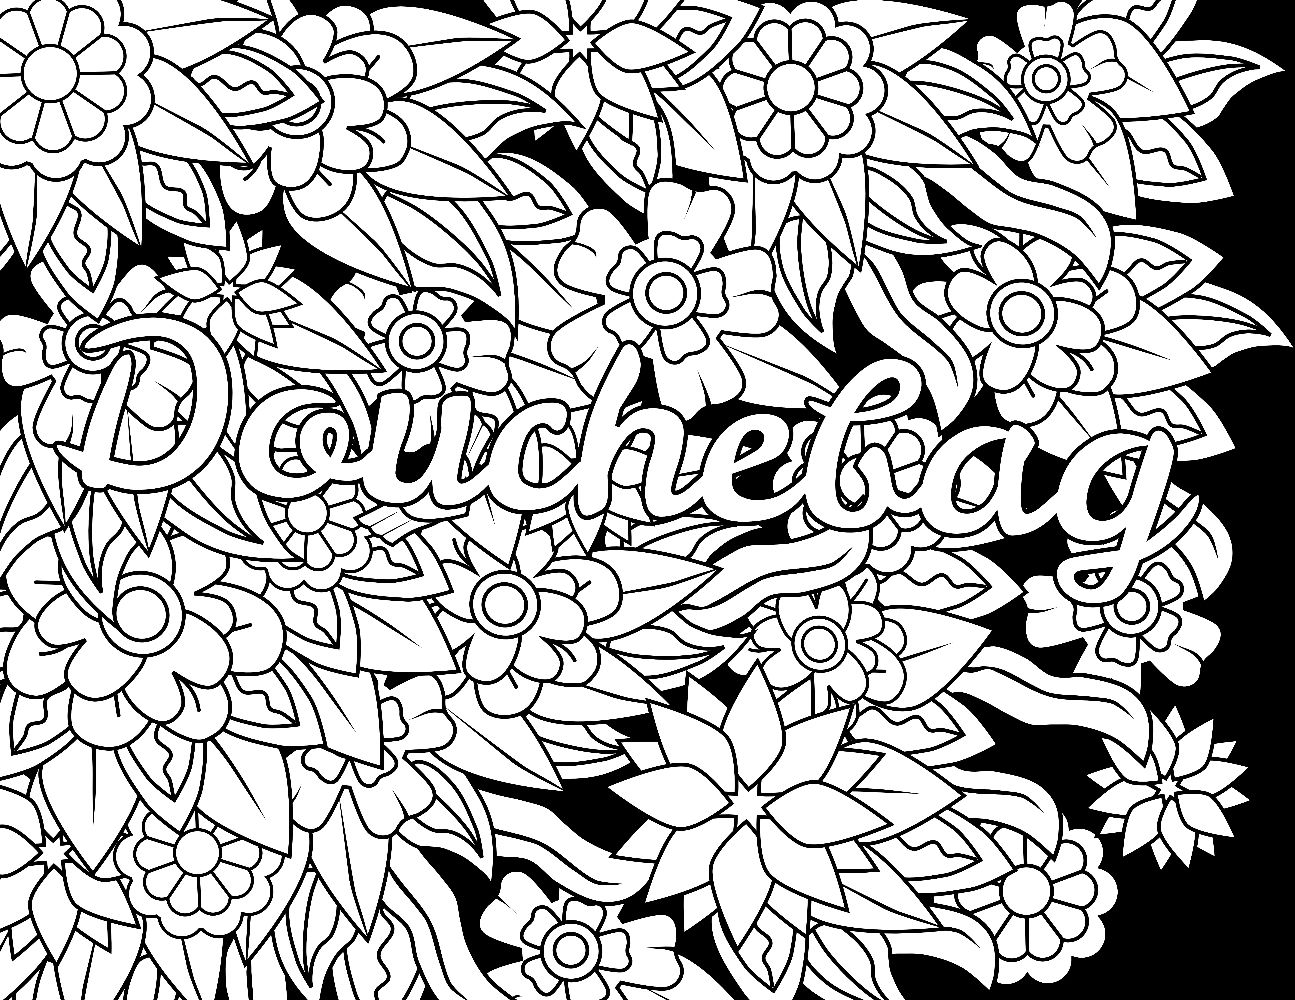 Swear word coloring book sarah bigwood - Douchebag Swear Word Coloring Page Adult Coloring Page Swearstressaway Com Comes